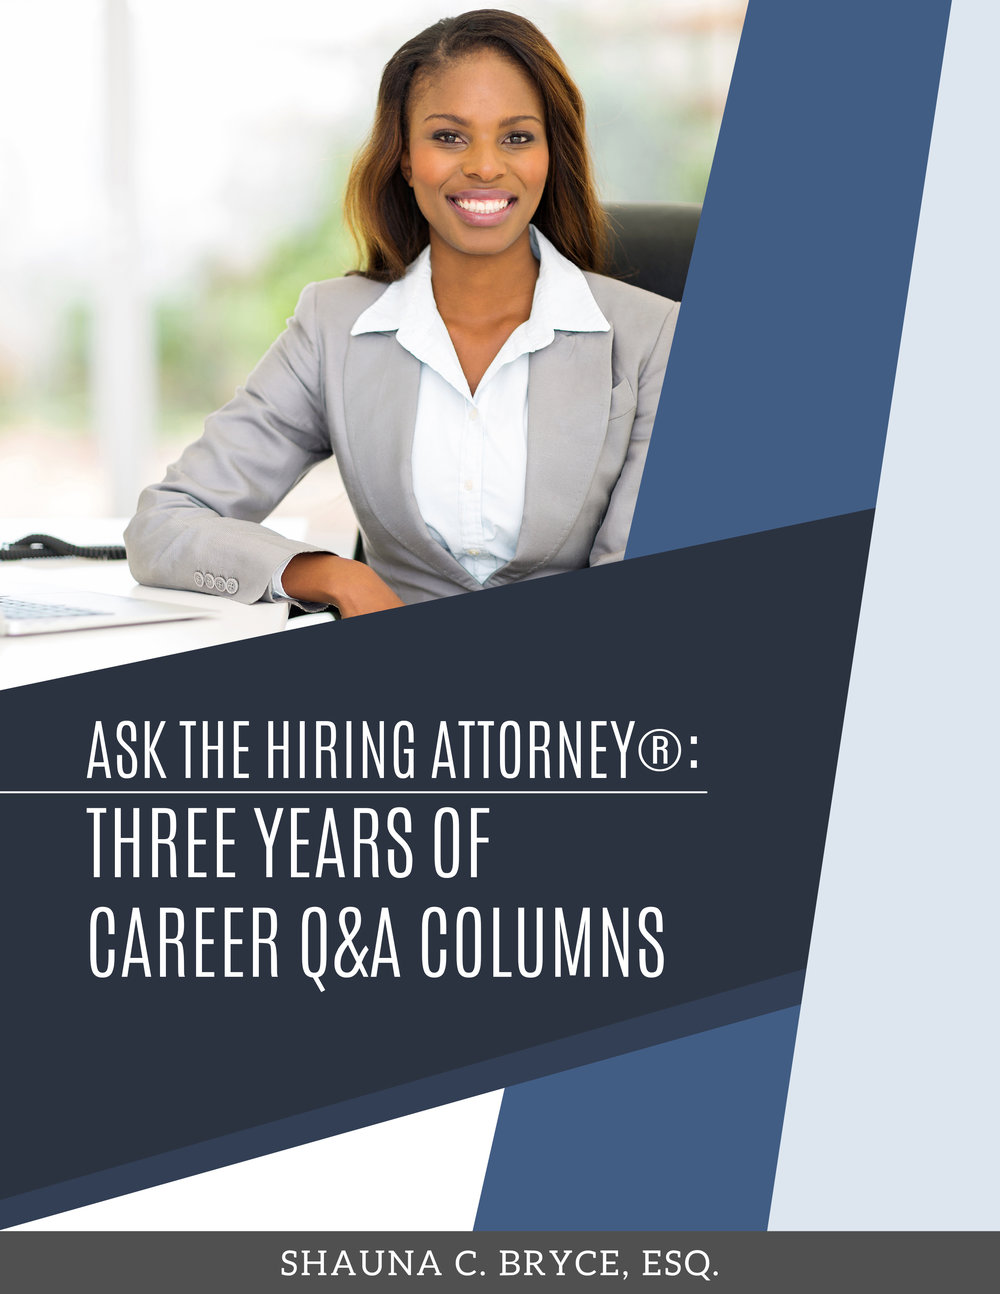 Ask the Hiring Attorney® Q&A column — Bryce Legal - Best-in